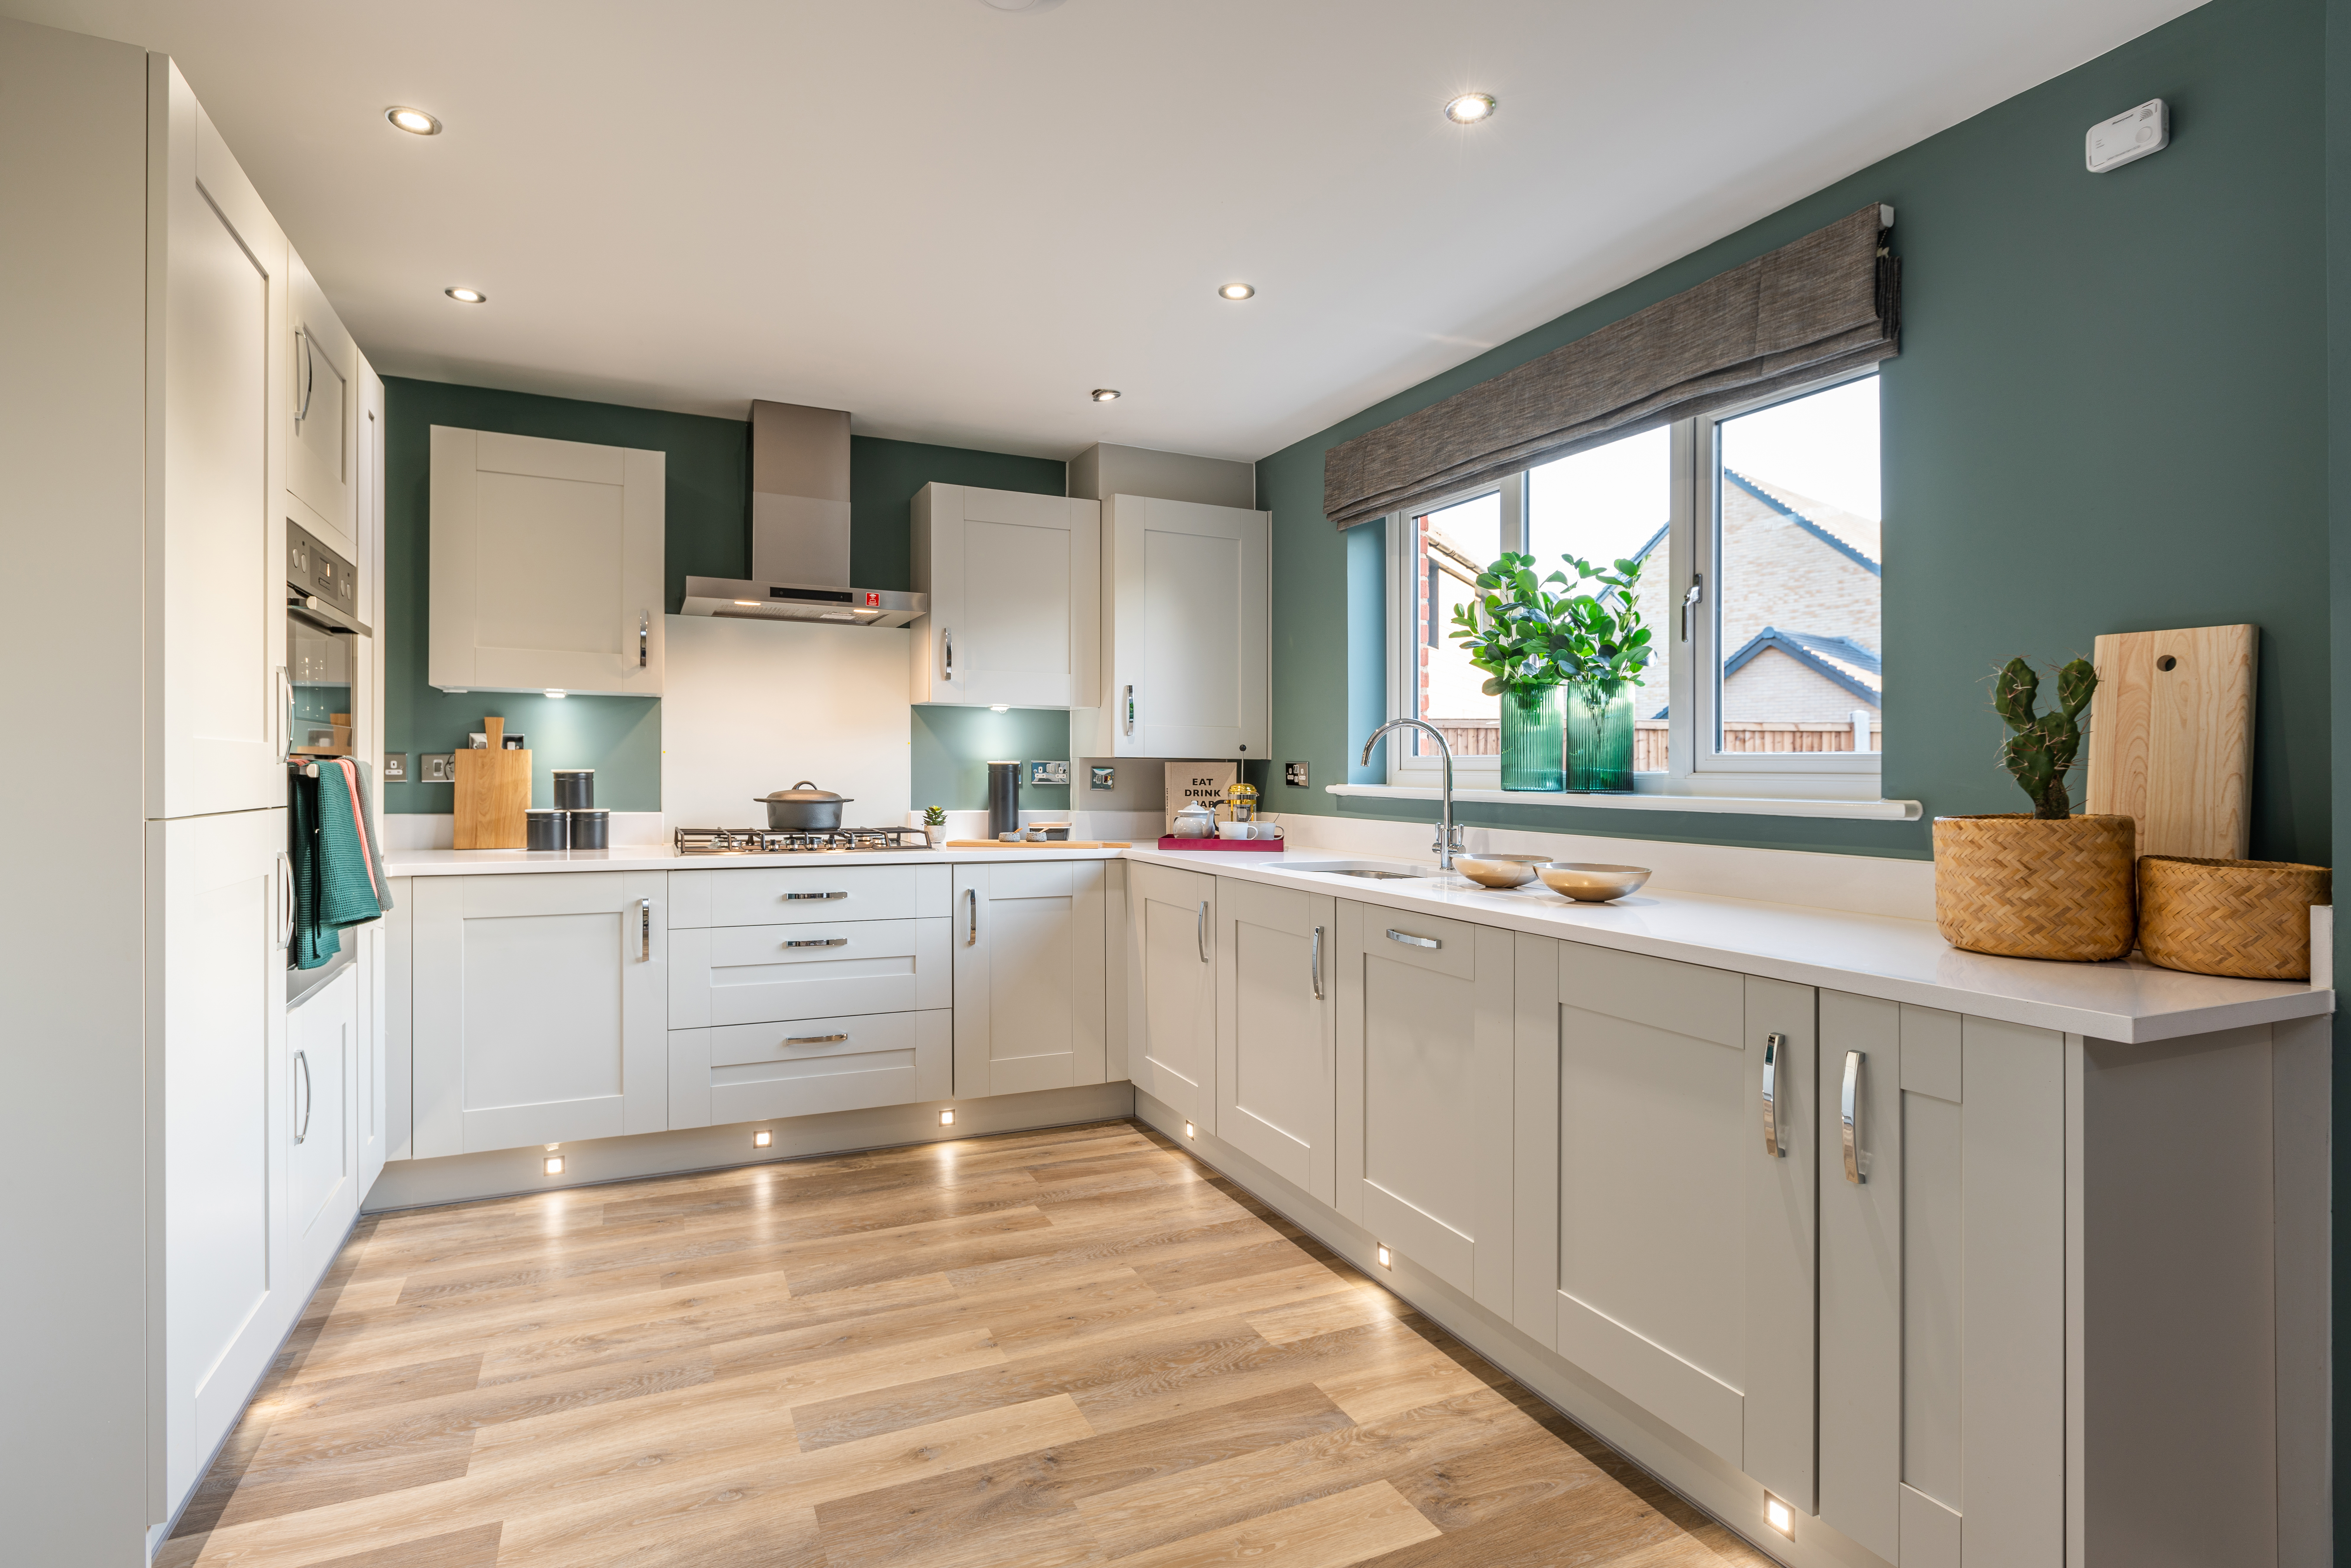 TW SE_Church View_Manford_Kitchen 3